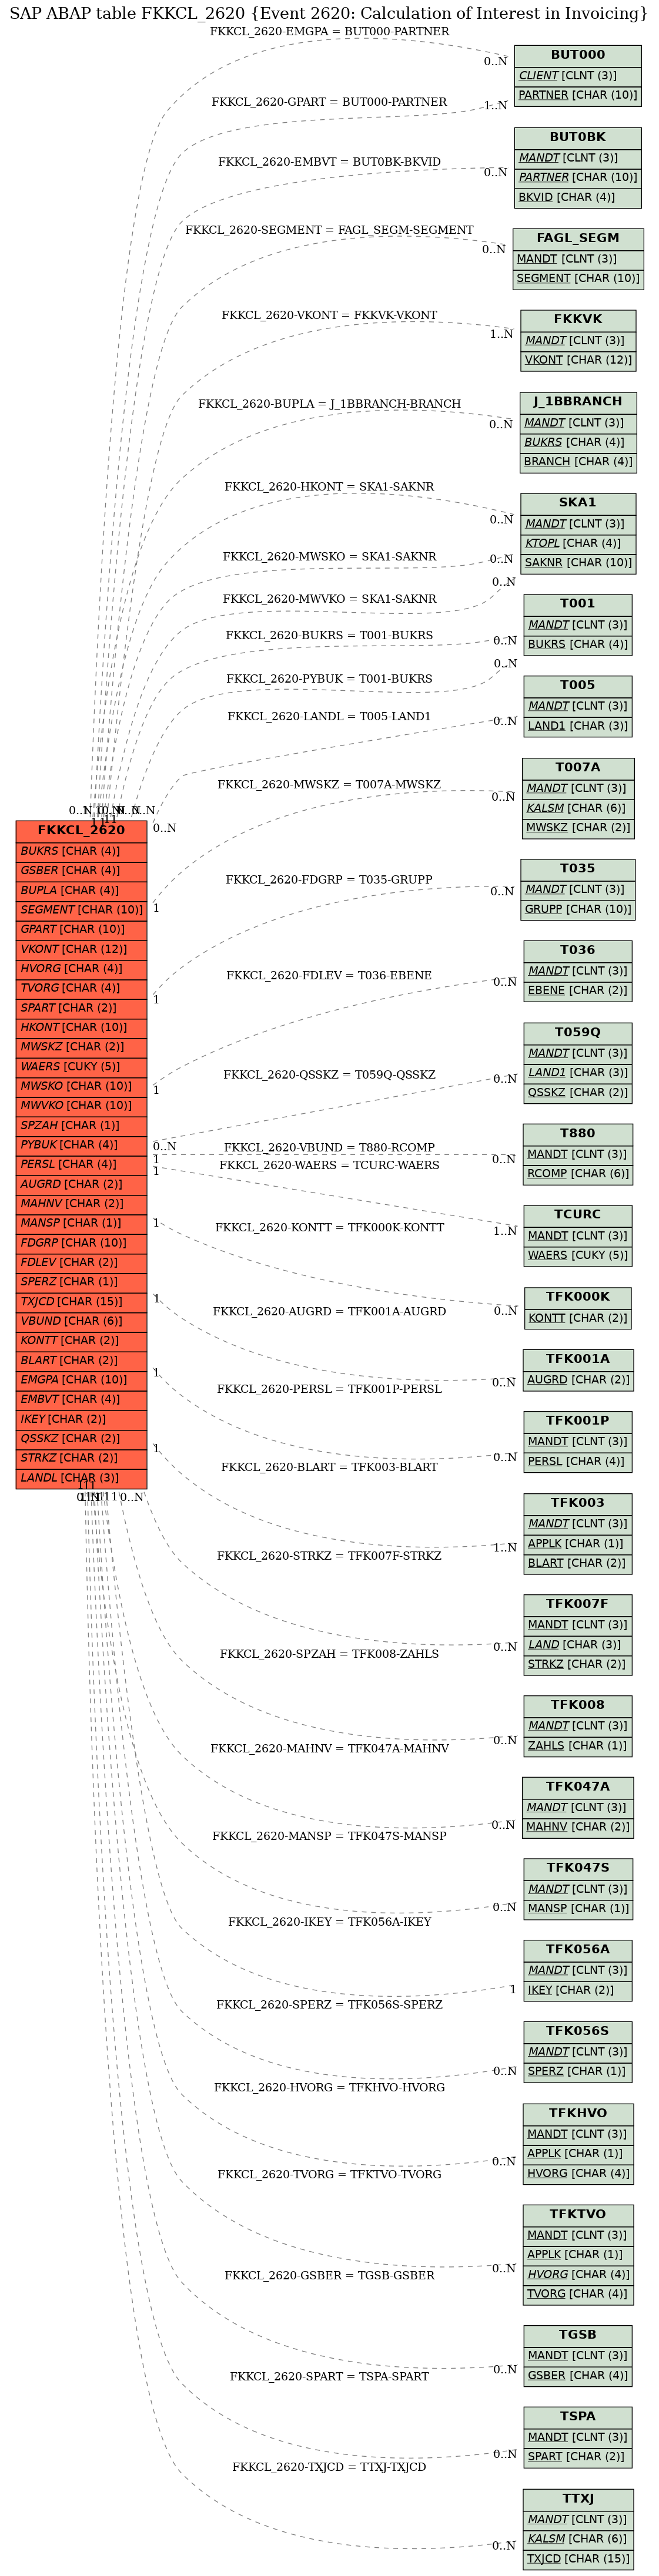 E-R Diagram for table FKKCL_2620 (Event 2620: Calculation of Interest in Invoicing)